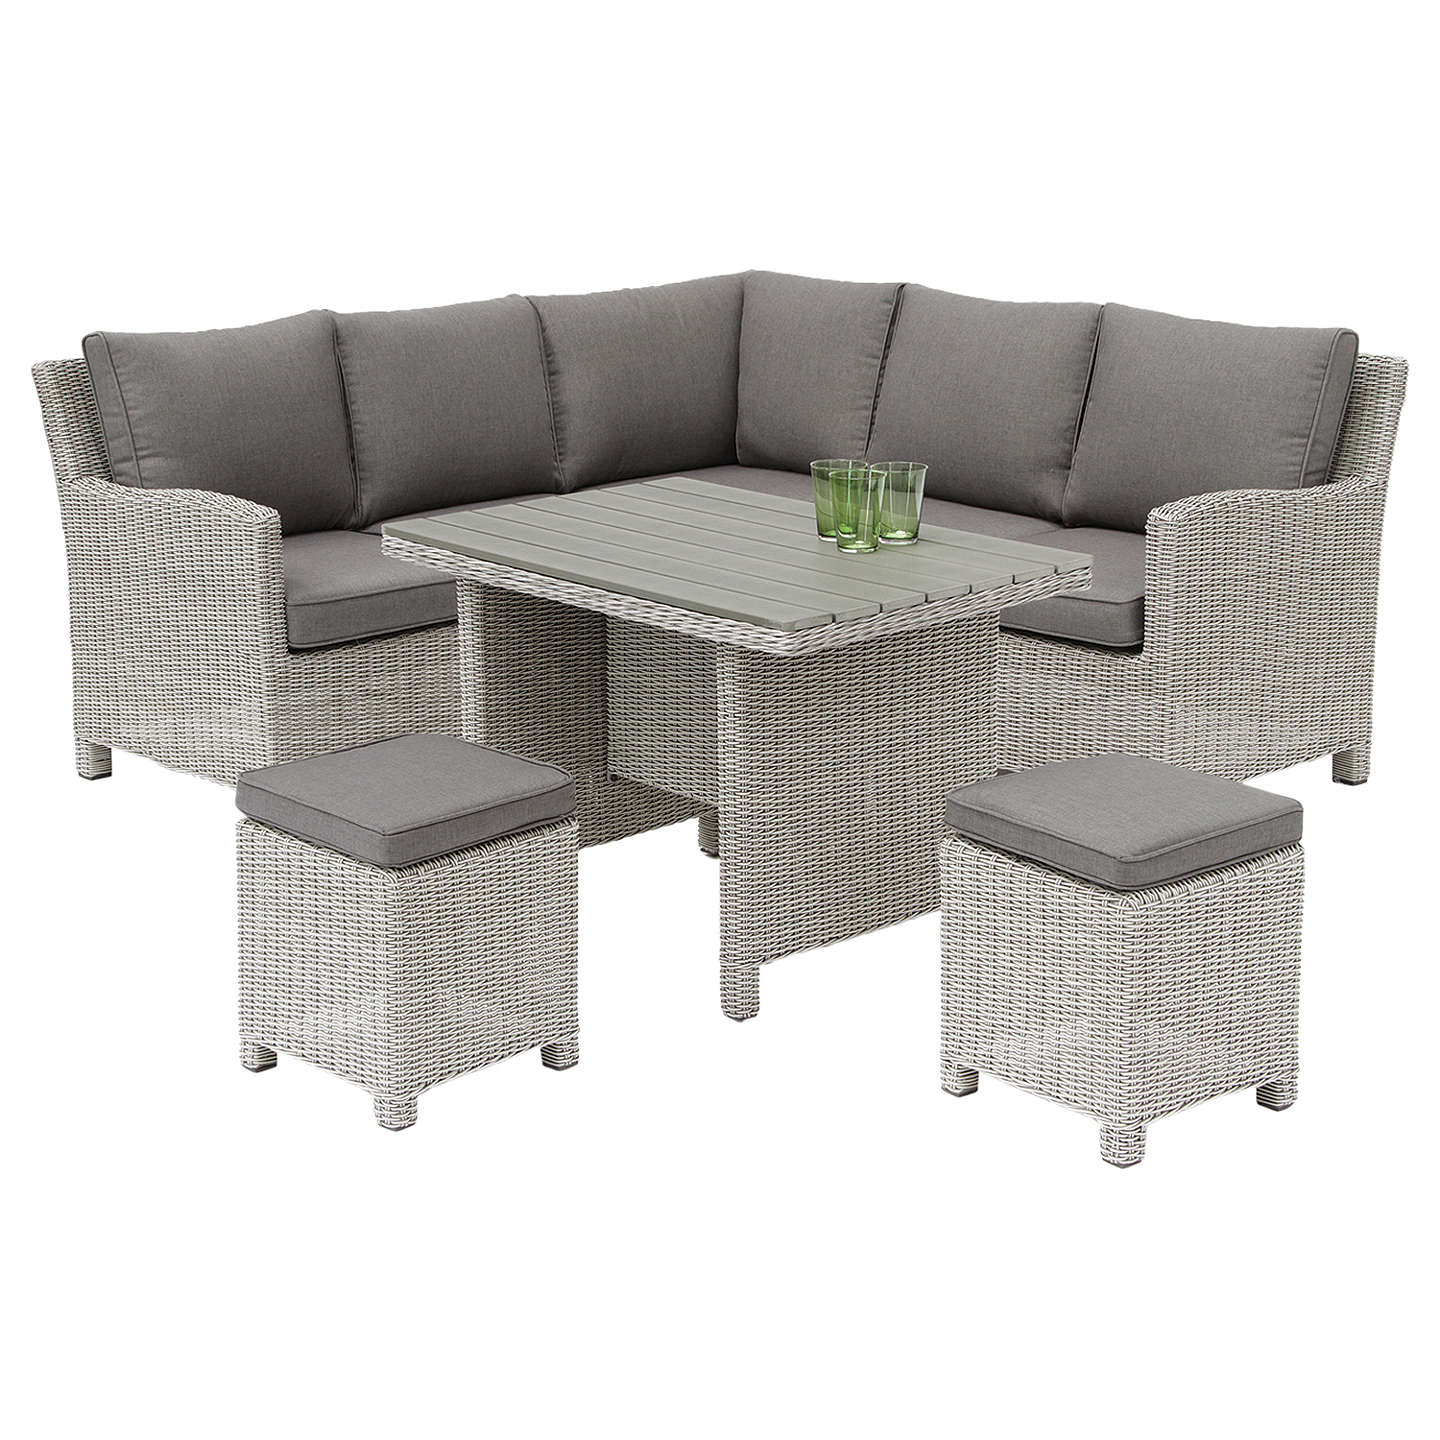 kettler palma 6 seater garden mini corner table and chairs set at